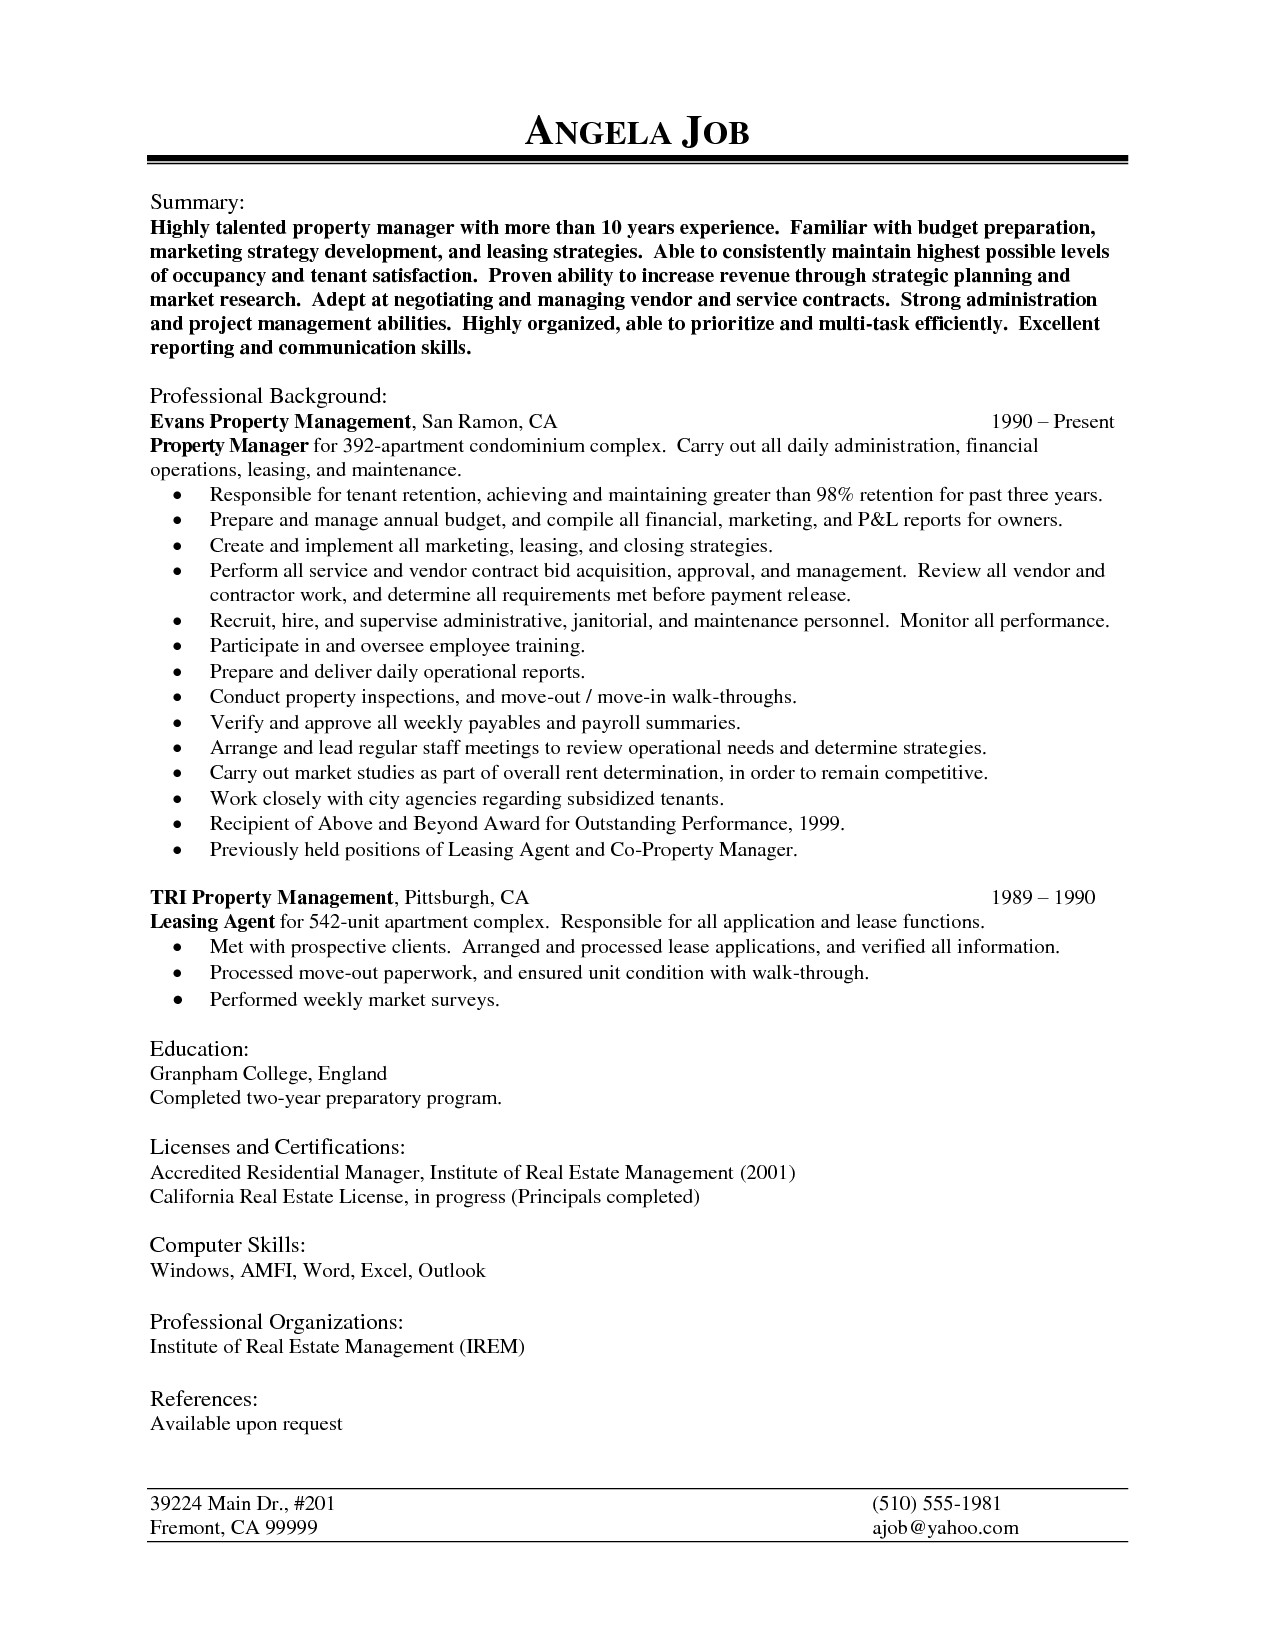 New Management Letter to Tenants Template - Property Management Resume Template Fresh Email Marketing Resume